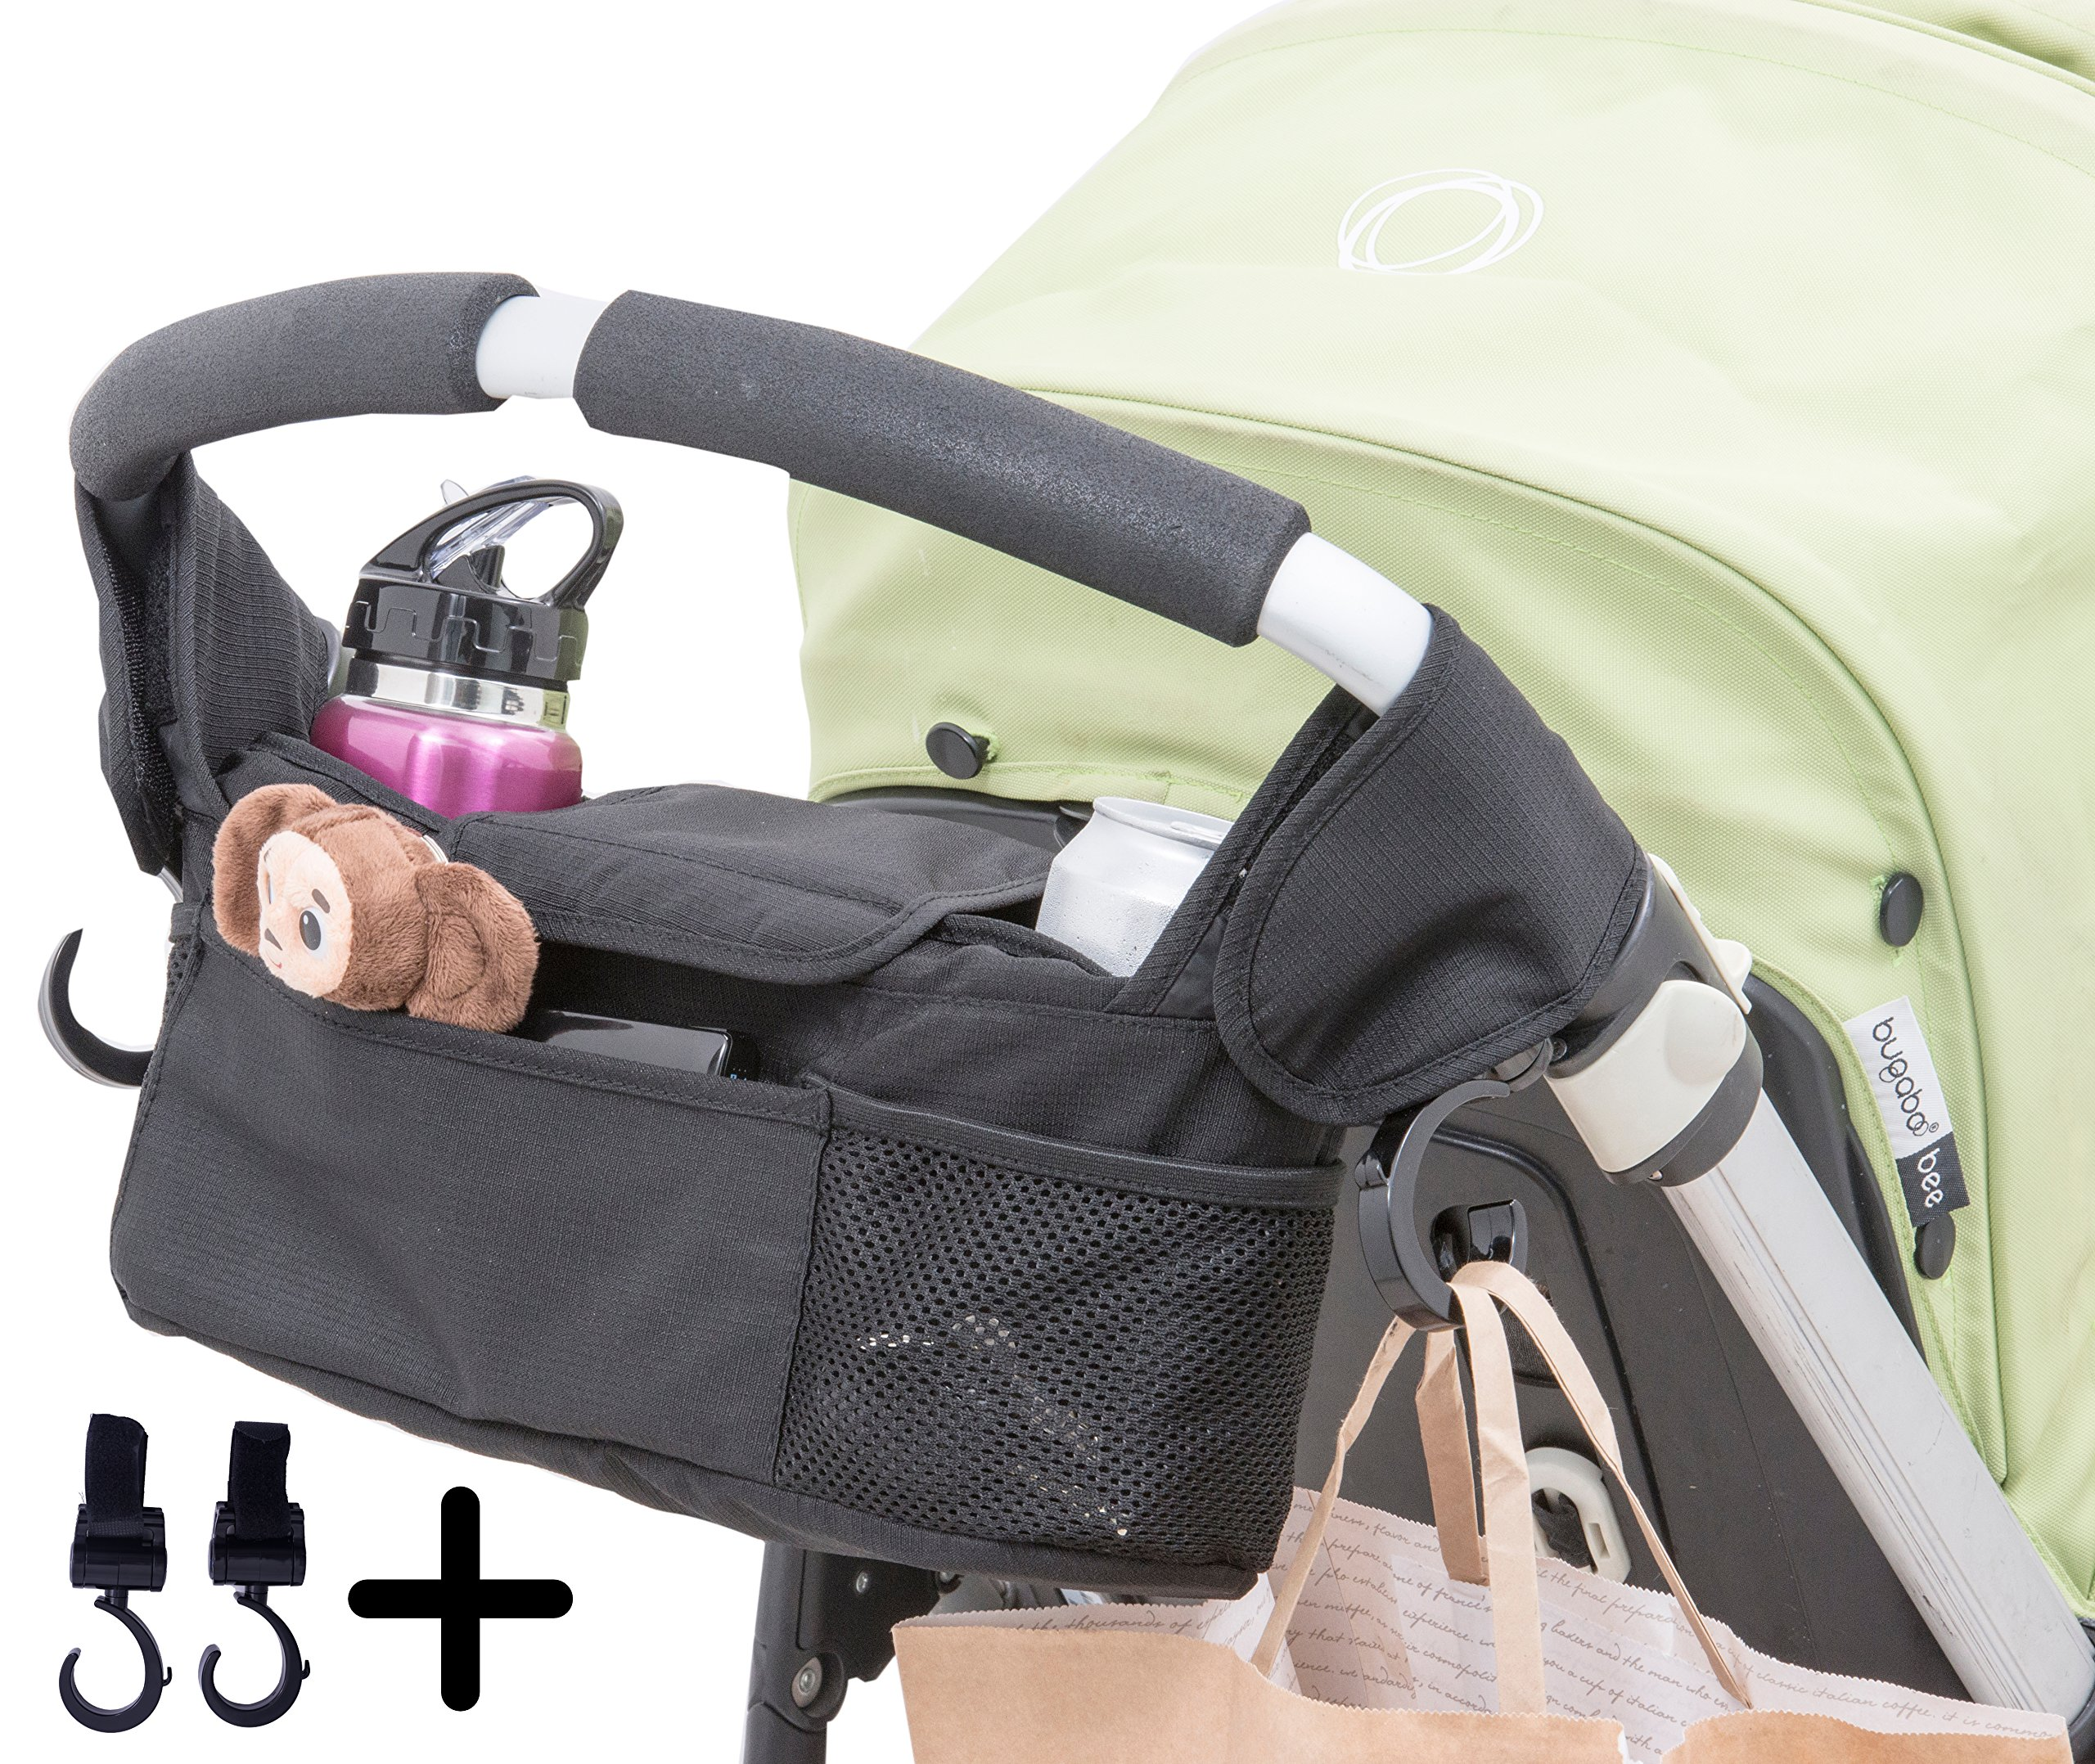 Quality Choices Universal Baby Stroller Organizer with Cup Holder and Two Hooks